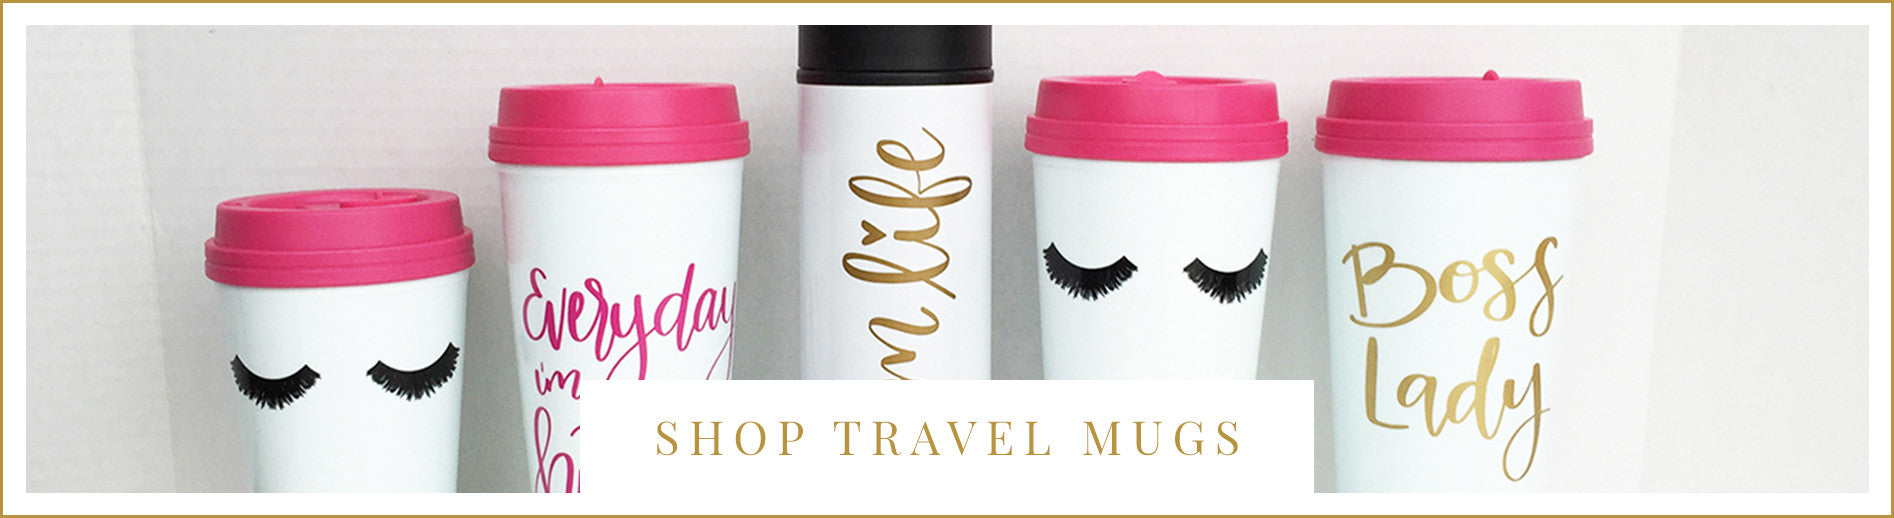 collections/travelmugs.jpg